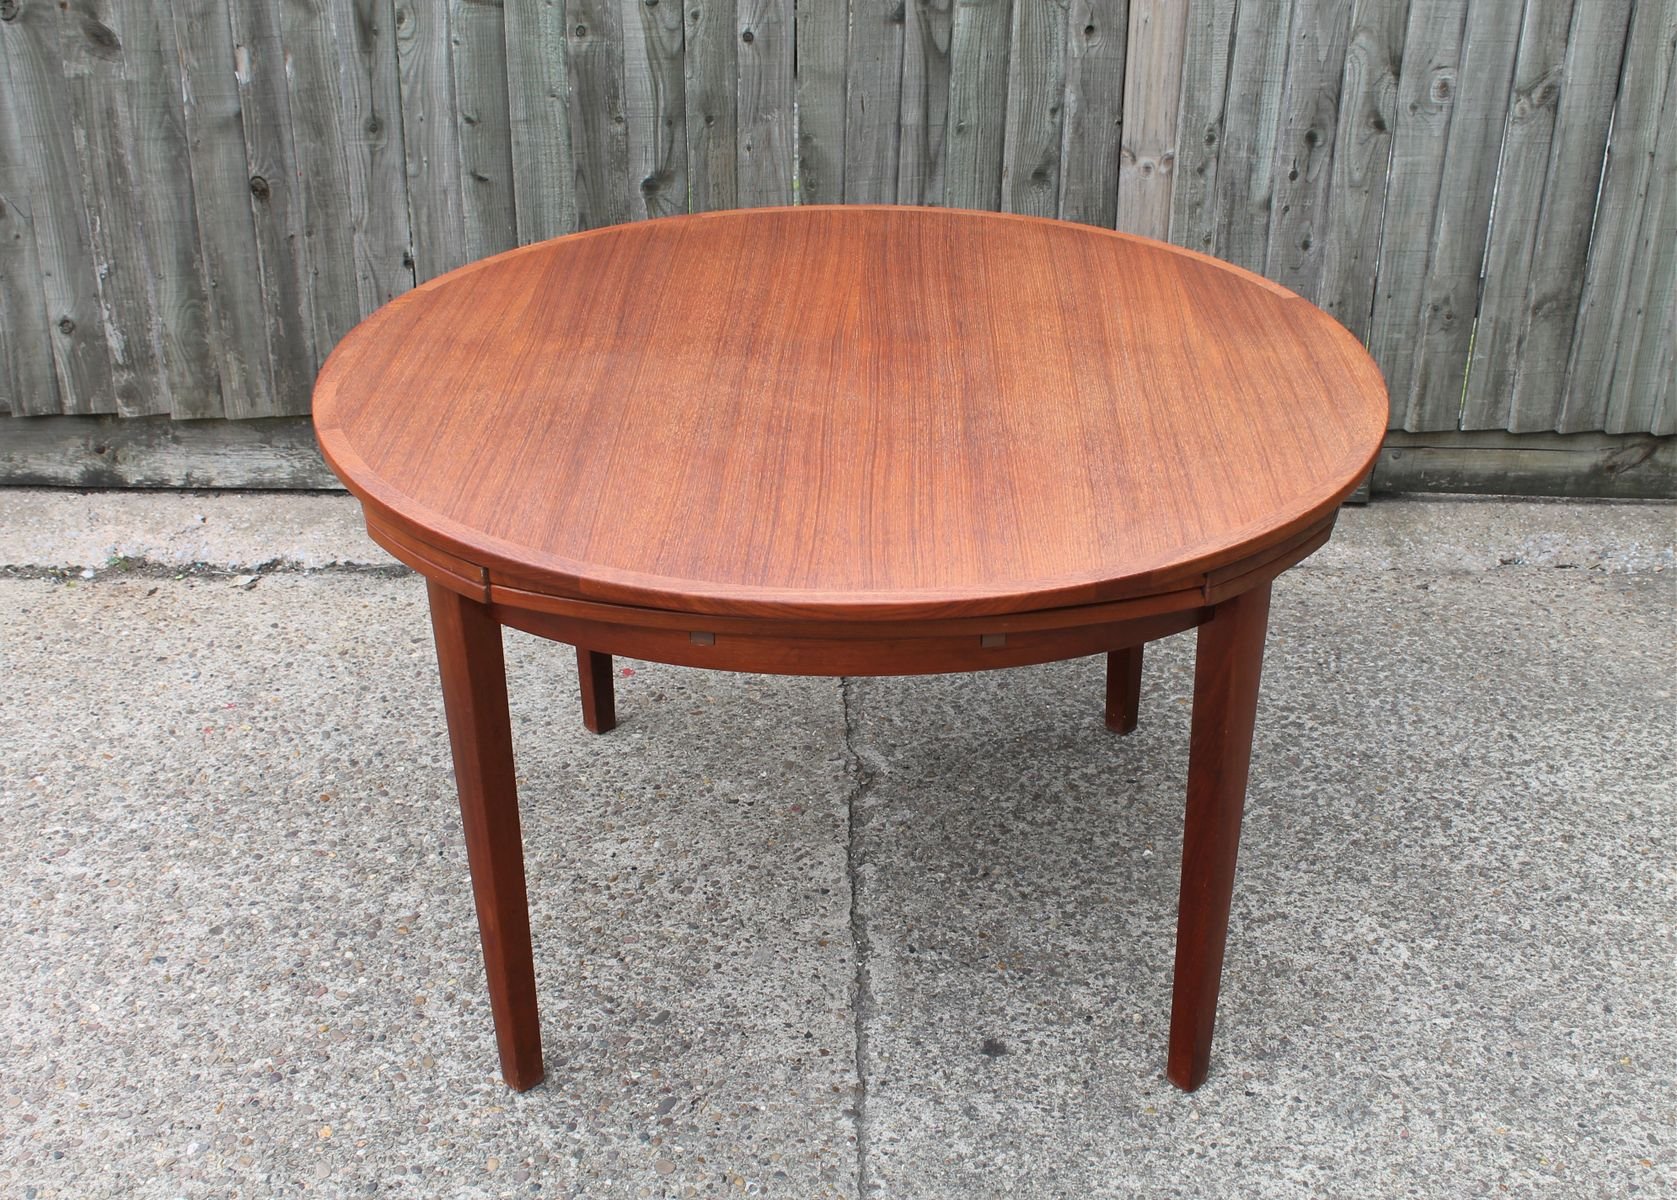 Vintage Flip Flap Lotus Teak Dining Table From Dyrlund